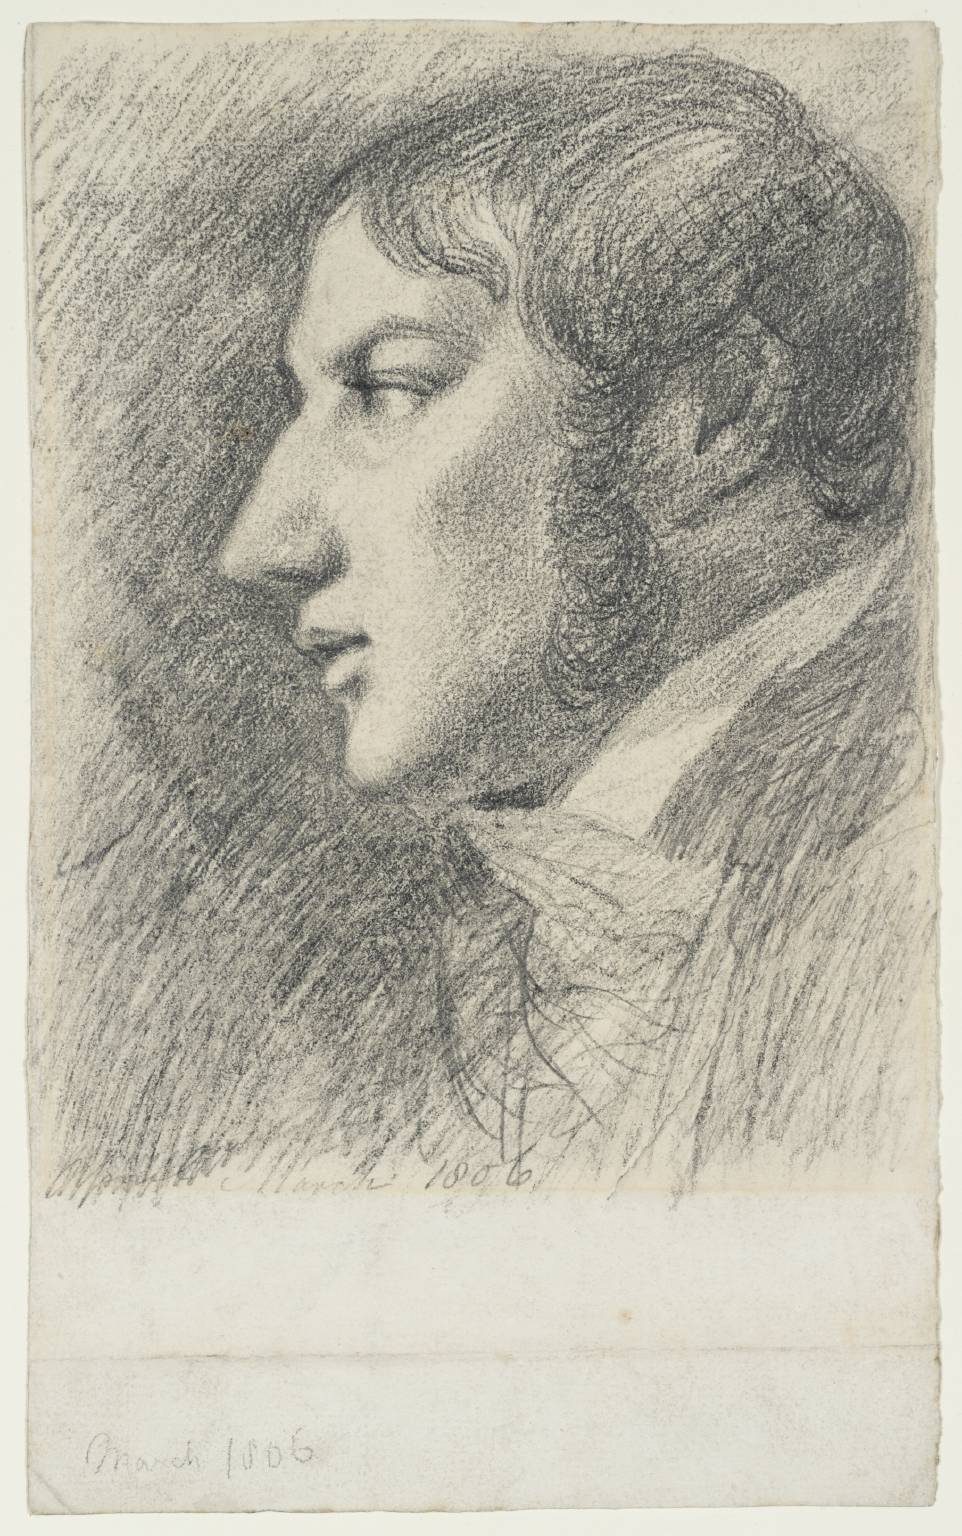 Self-Portrait, 1806, John Constable, (Image courtesy of the Tate, London)